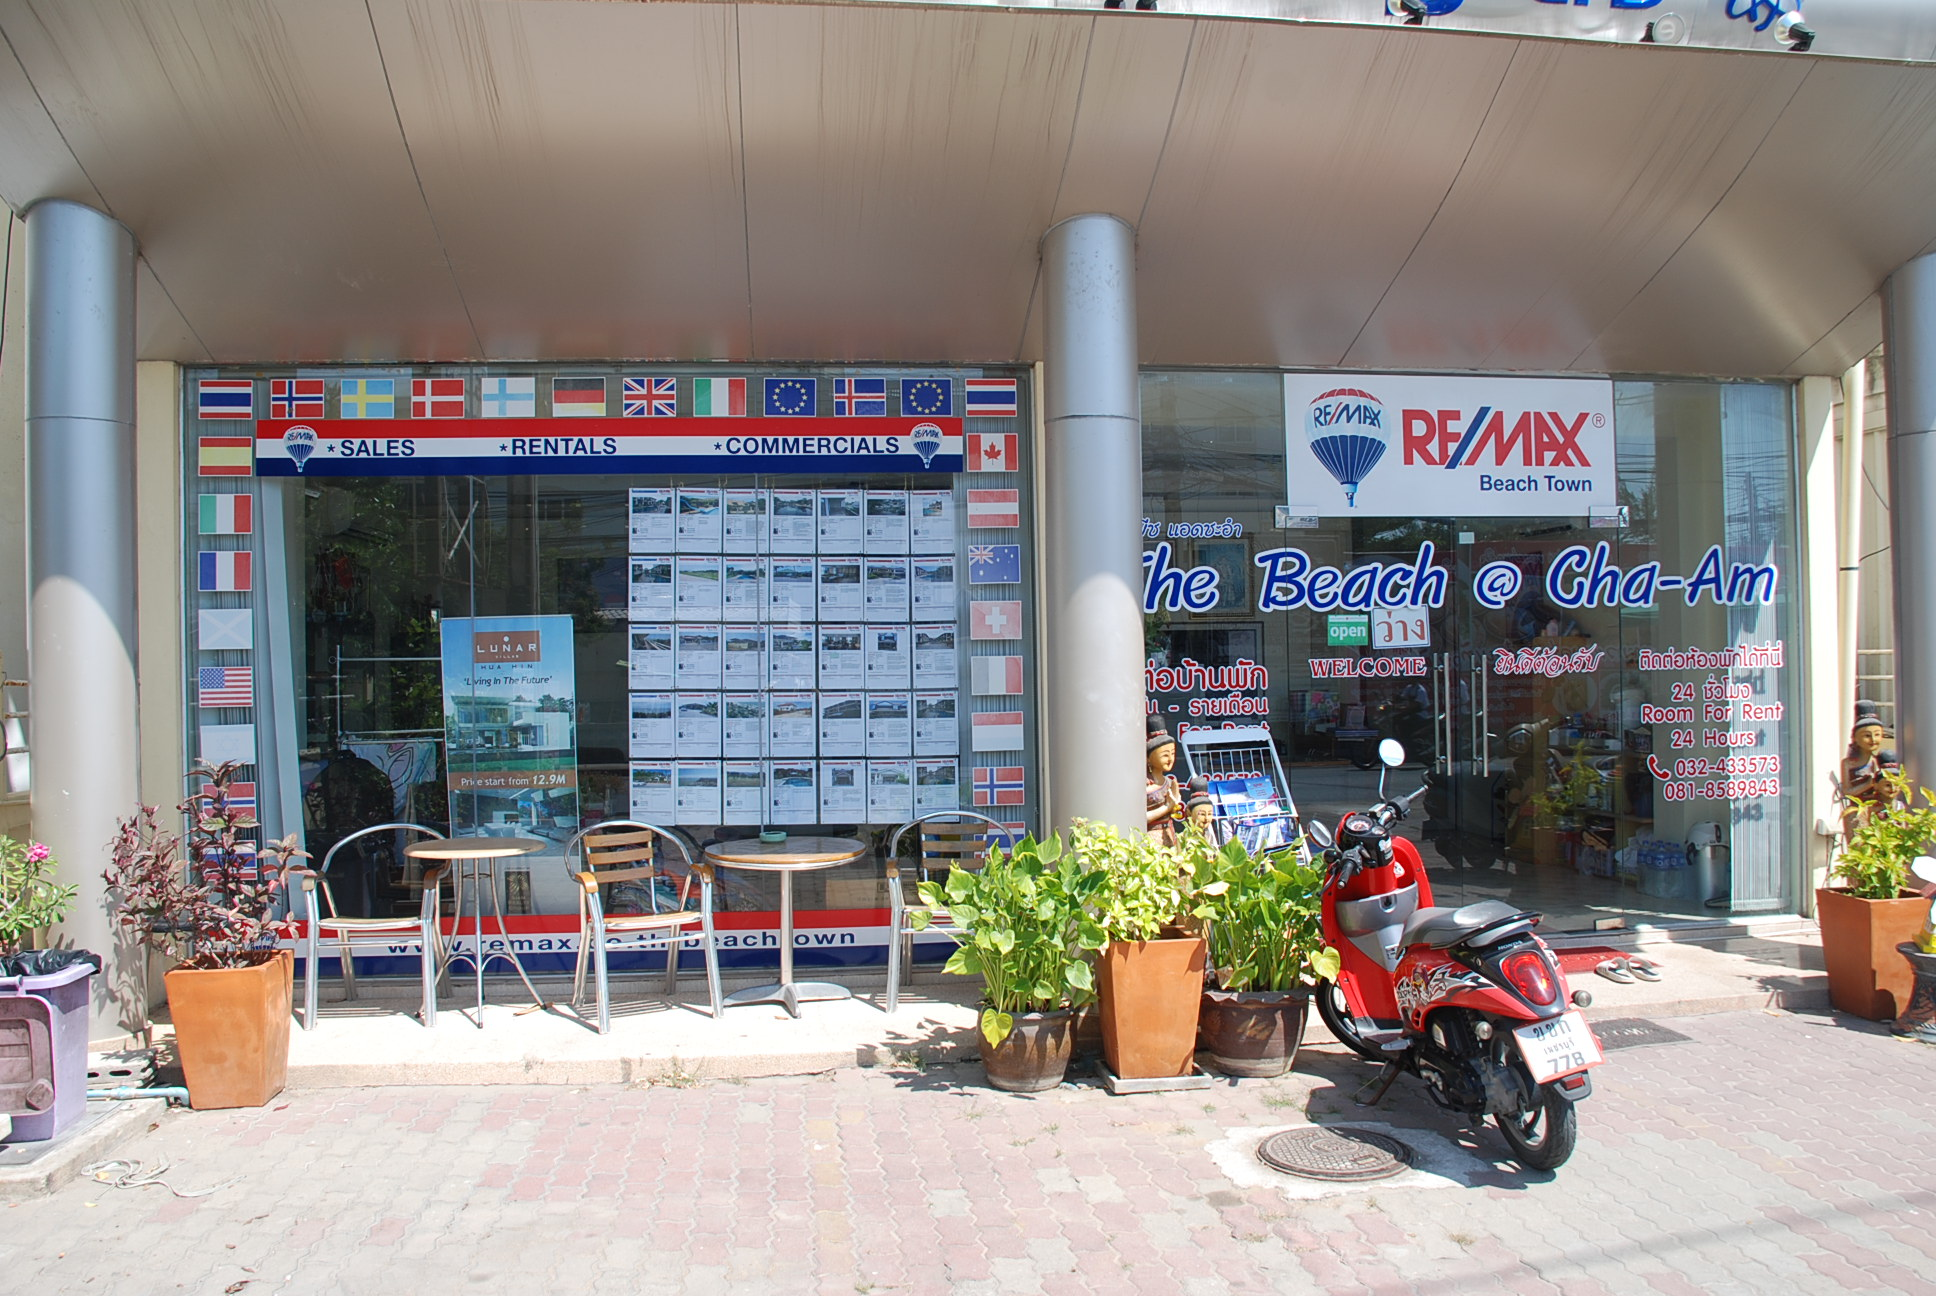 RE/MAX Beach Town logo